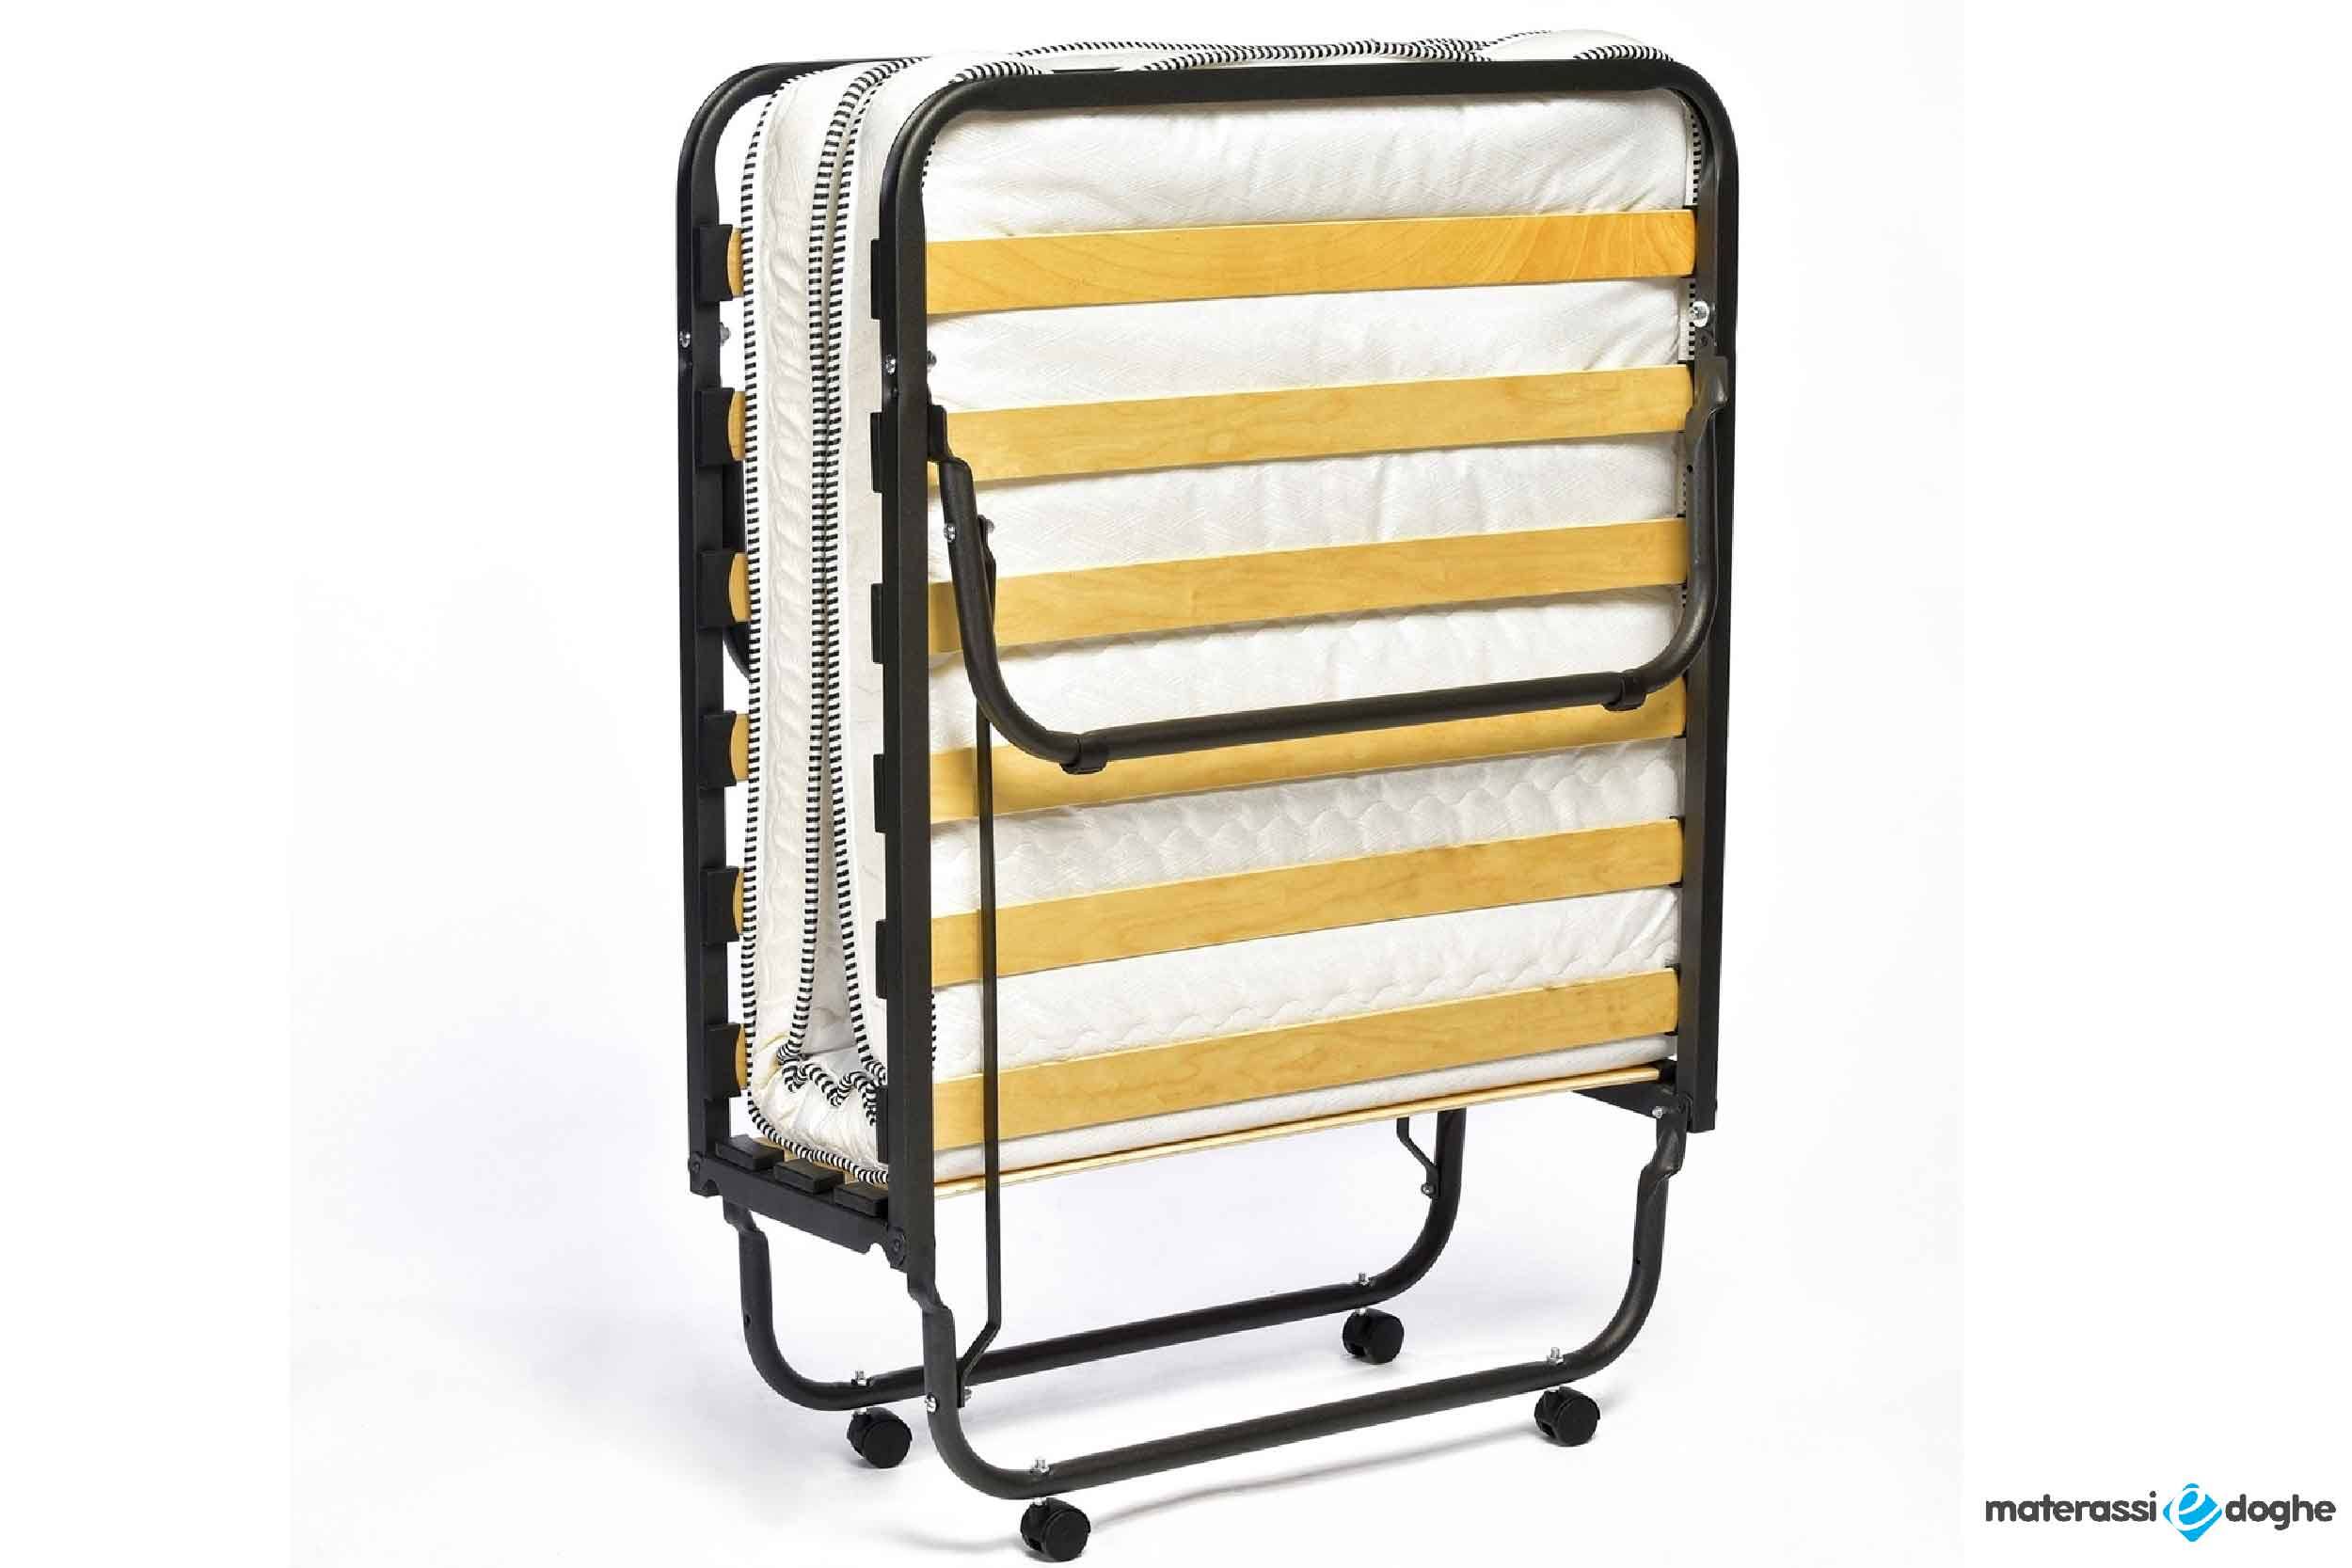 Orthopedic Wood Slatted Folding Bed With Wheels Including H.11 Cm Mattress In Waterfoam